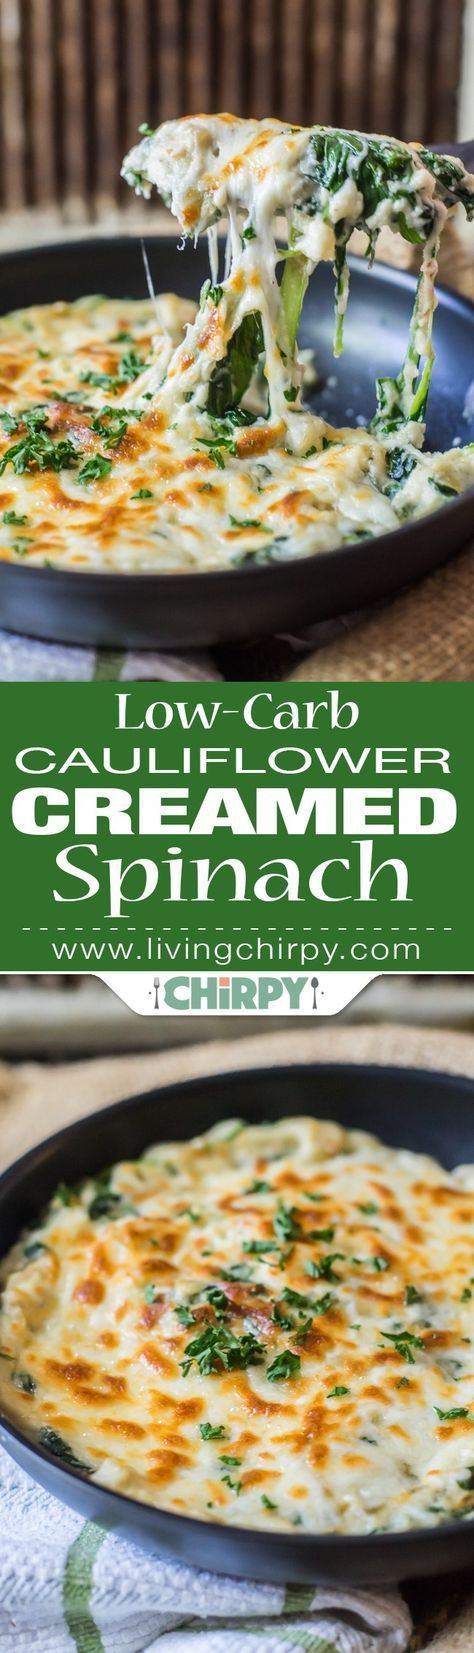 Low Carb Vegetable Side Dishes  Low Carb Cauliflower Creamed Spinach Recipe